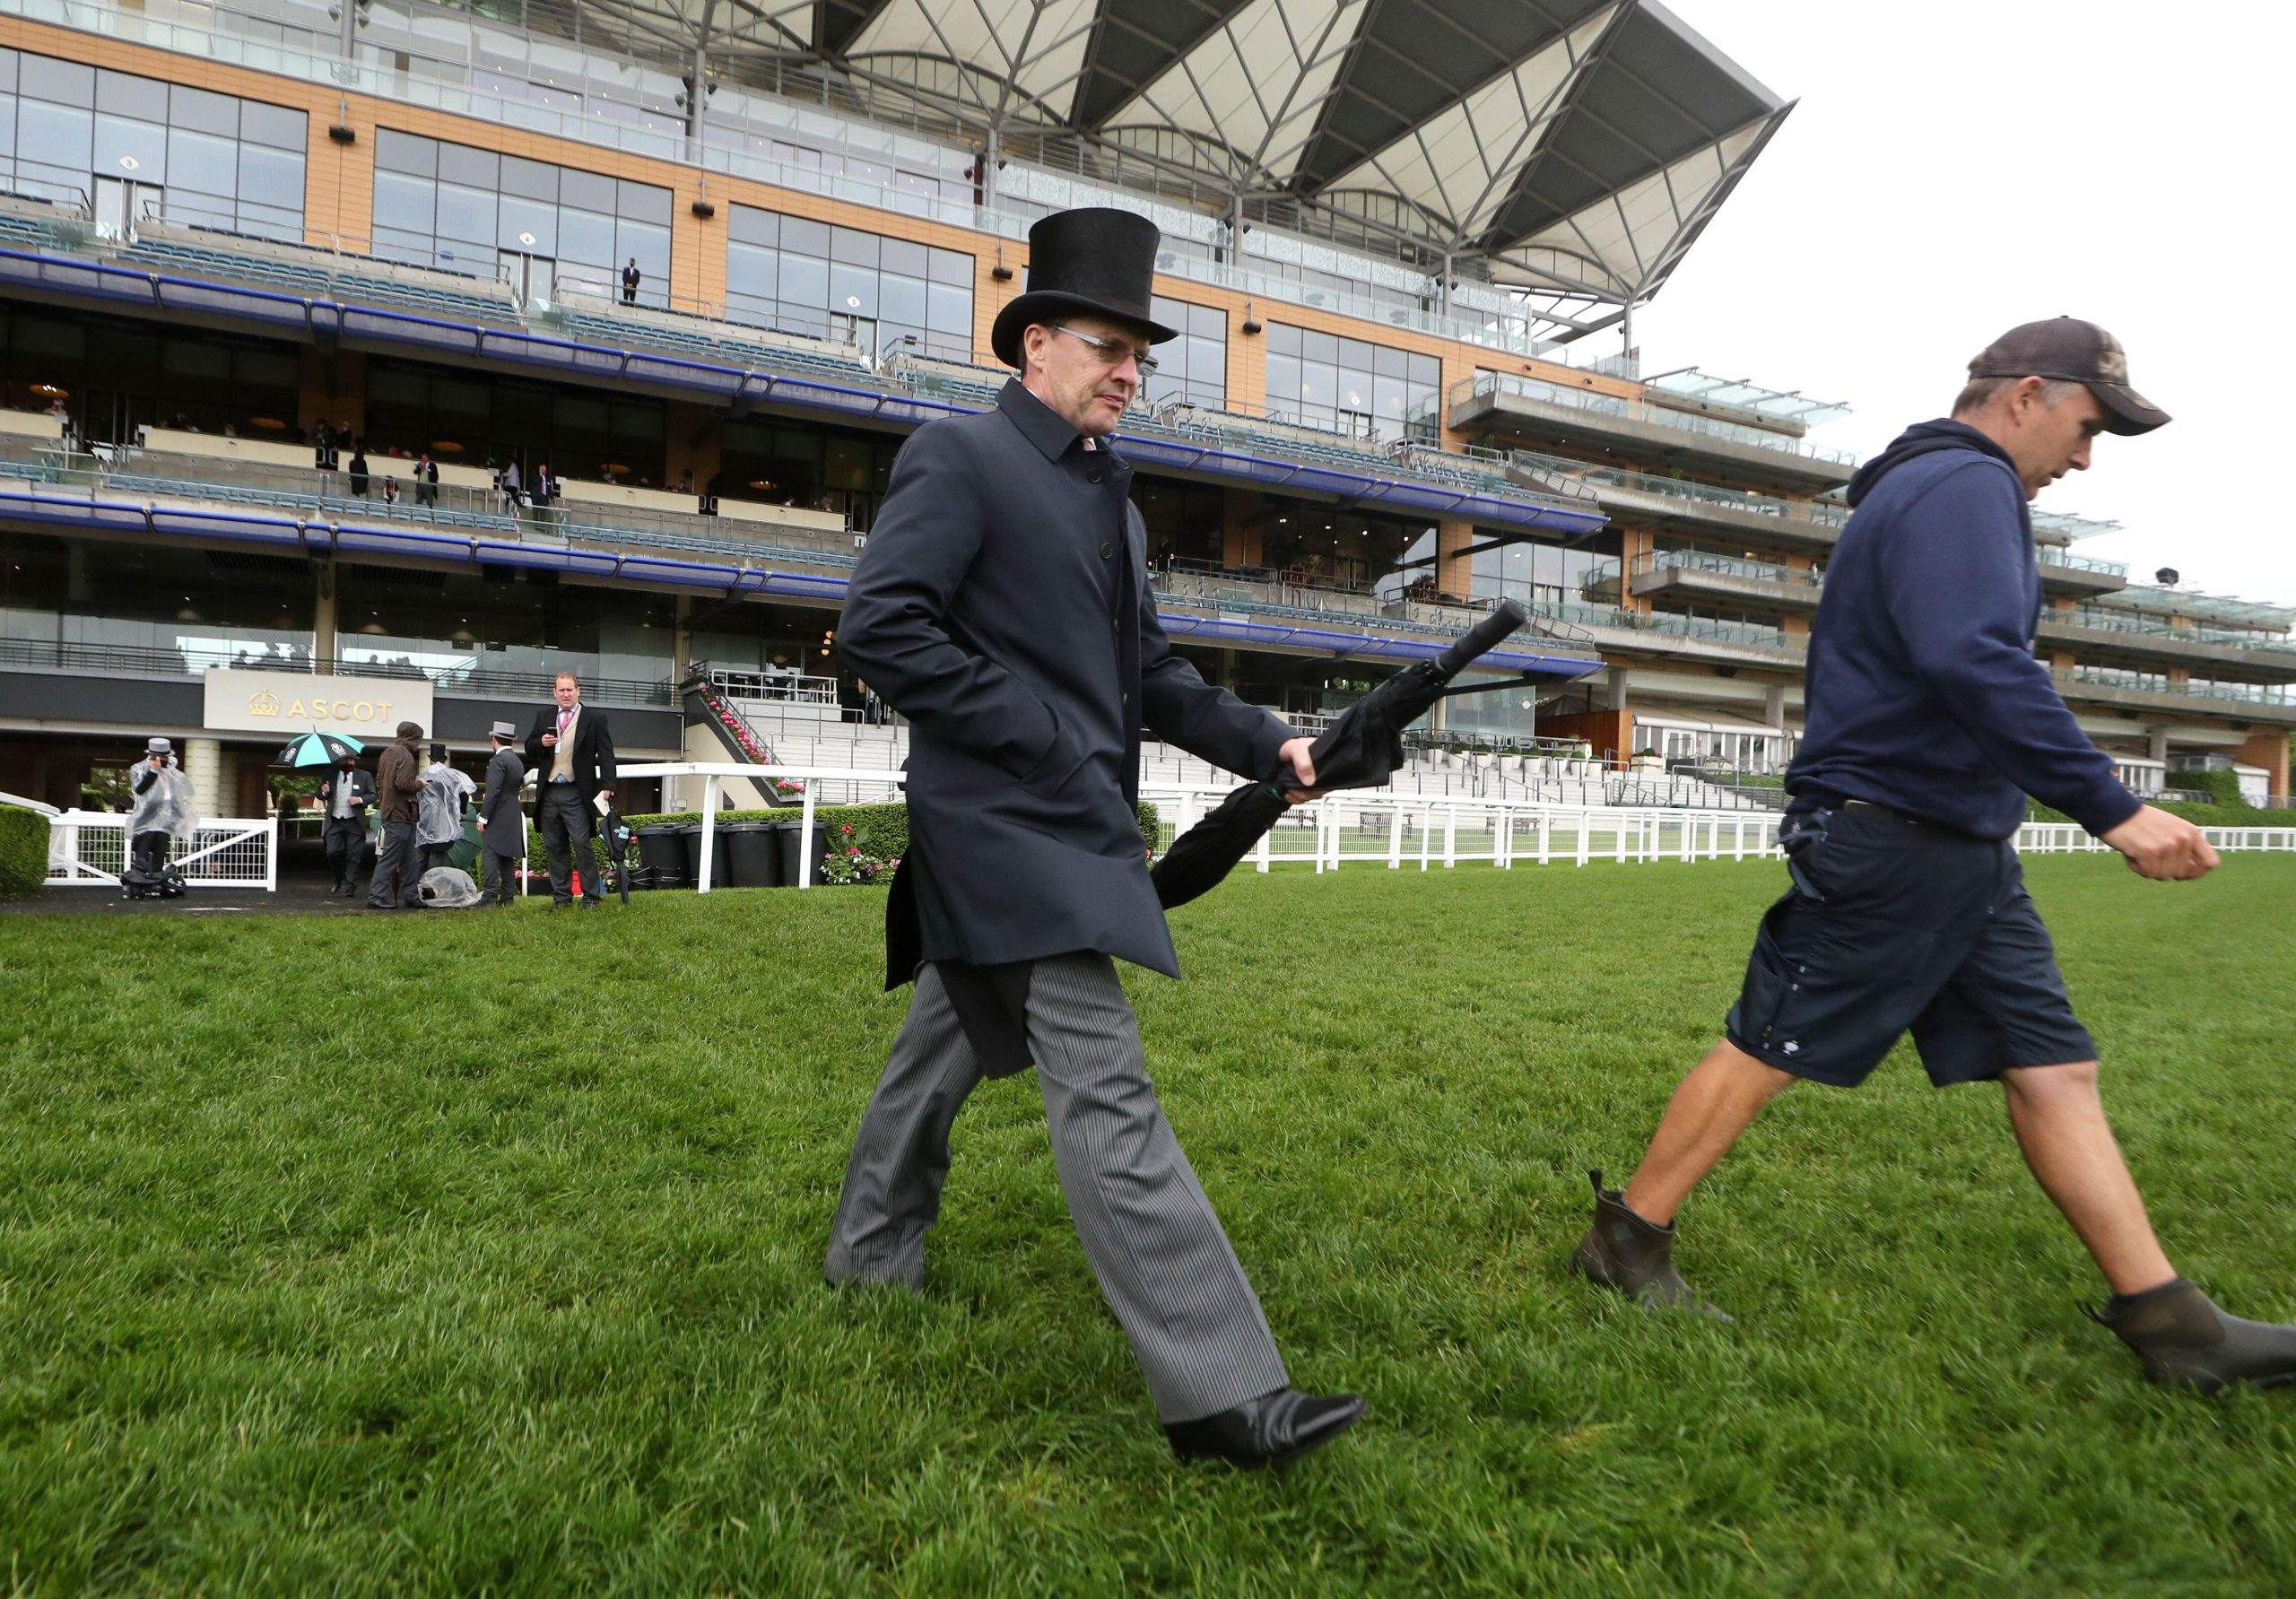 2G3Y8G3 Trainer Aidan O'Brien walks out to check the ground during day four of Royal Ascot at Ascot Racecourse. Picture date: Friday June 18, 2021.